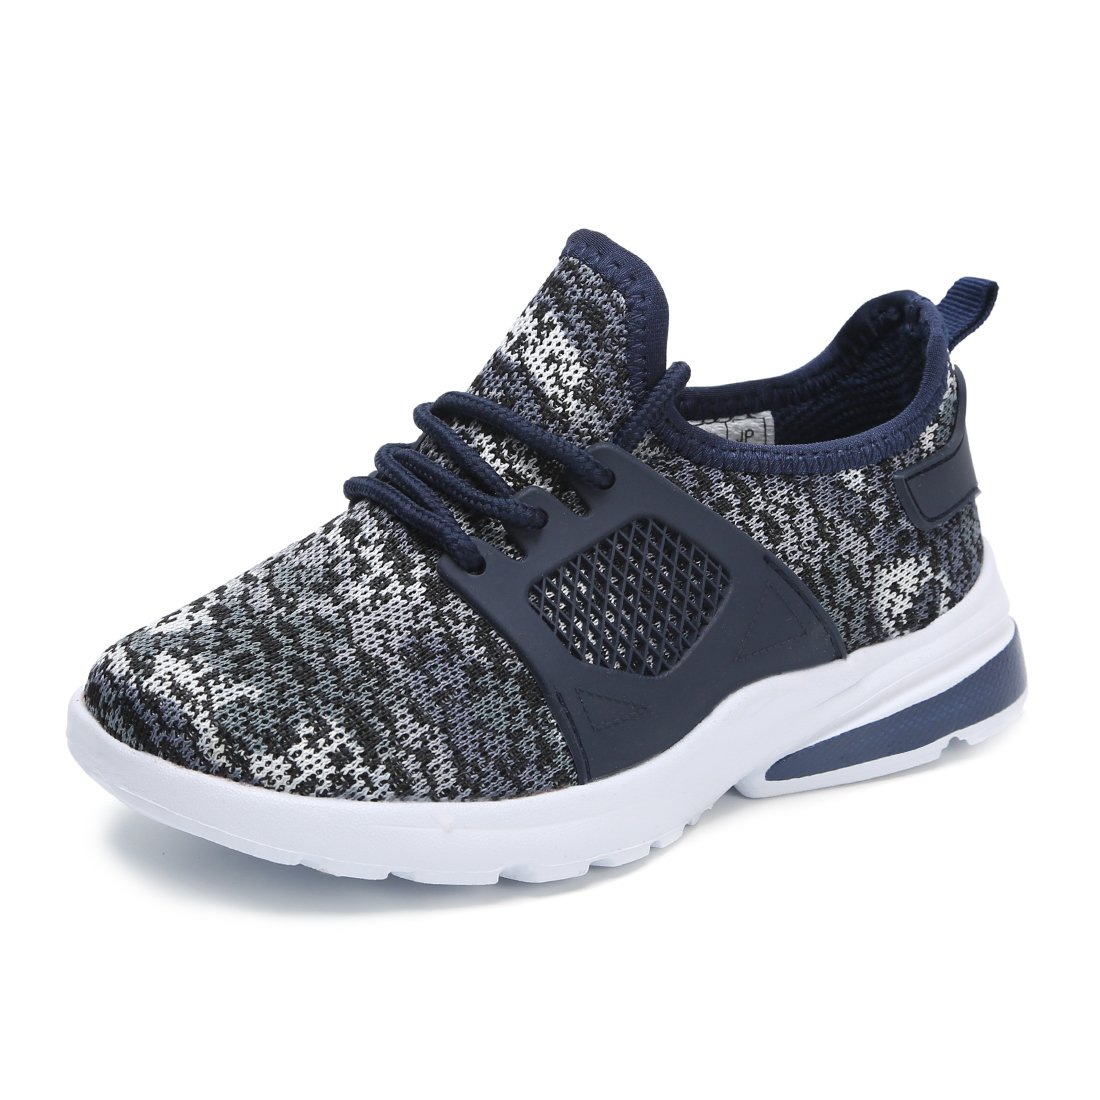 Hawkwell Youth Breathable Camouflage Lace-up Running Shoes(Toddler/Little Kid/Big Kid),Navy Mesh,2 M US Little Kid